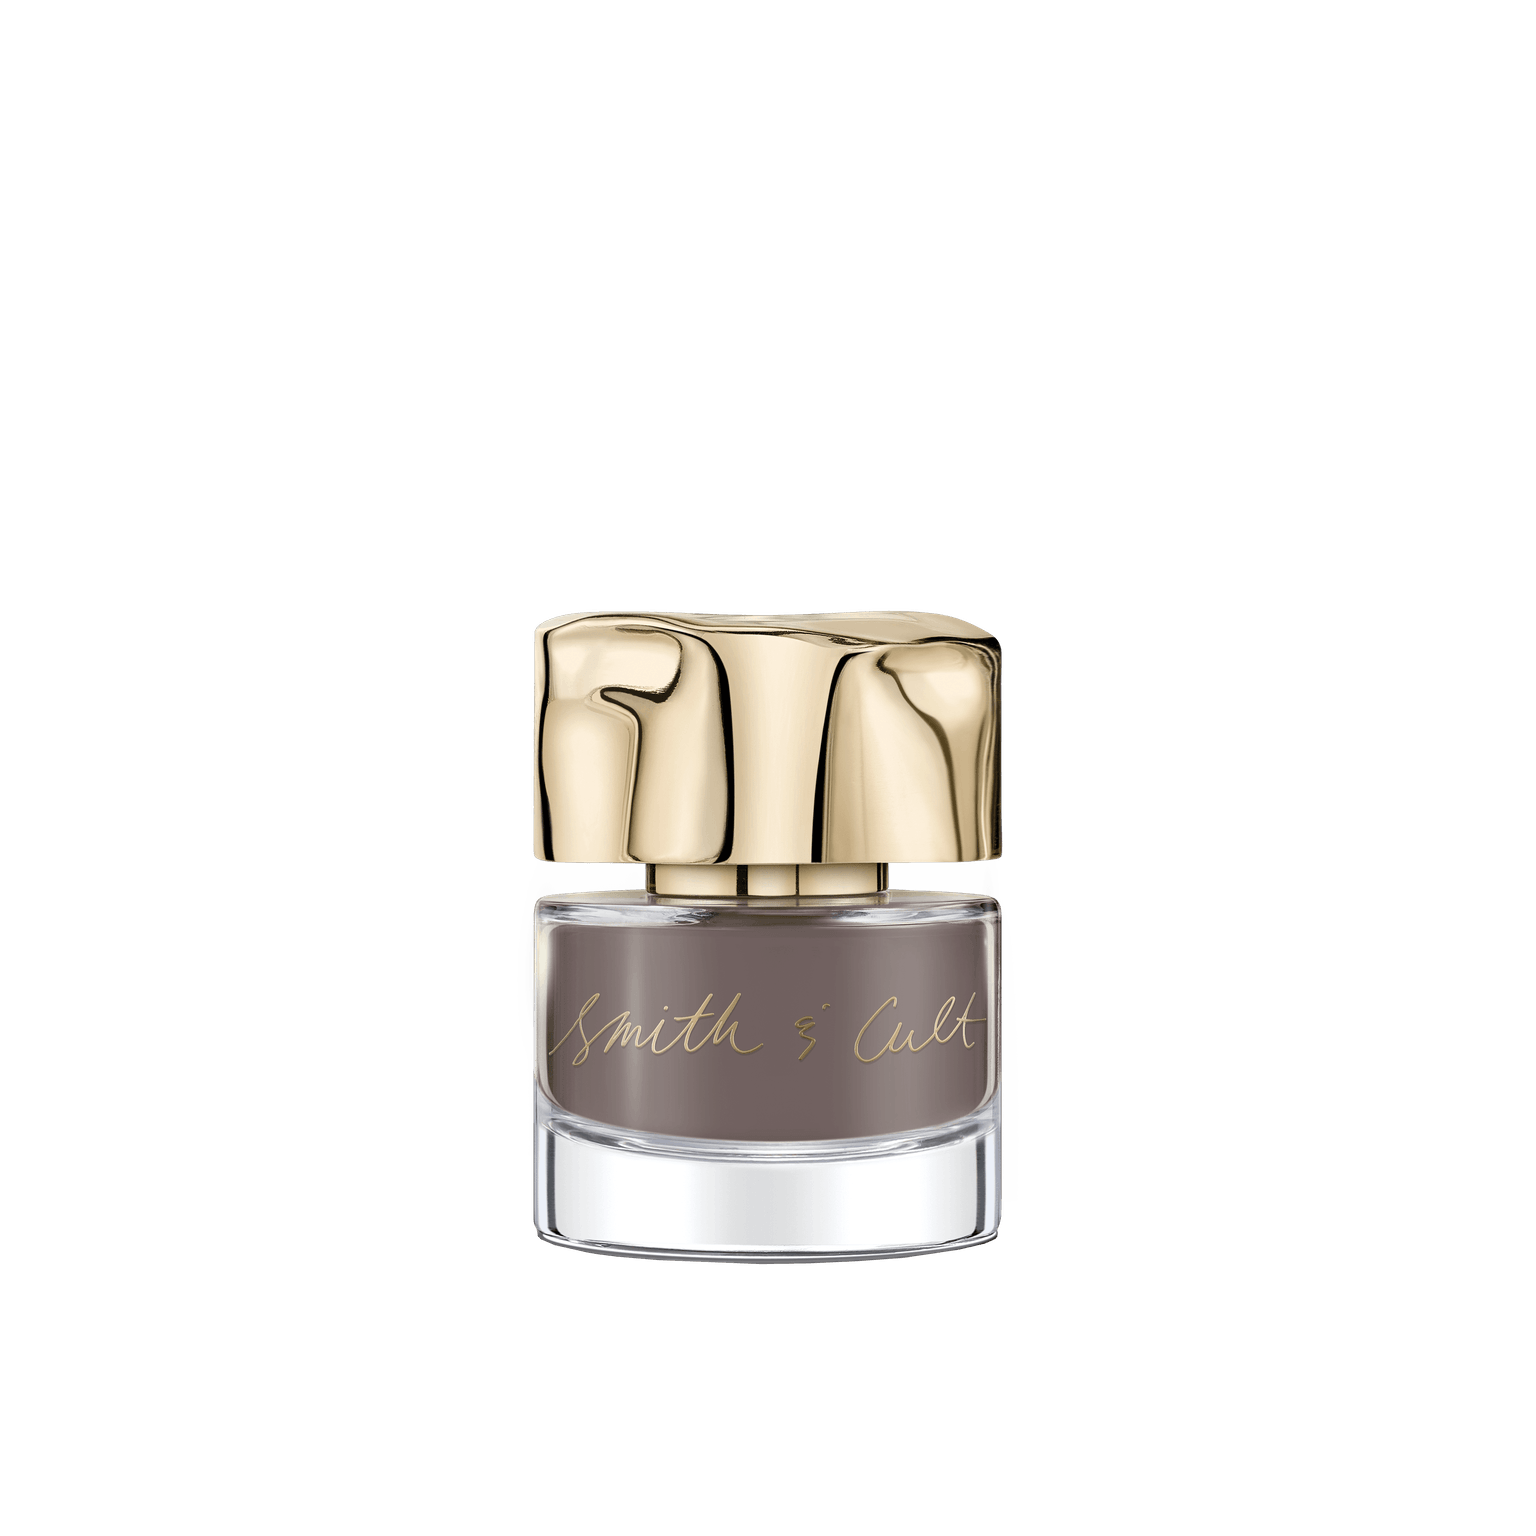 Smith & Cult Nail Lacquer - Stockholm Syndrome / Neighborhood Goods